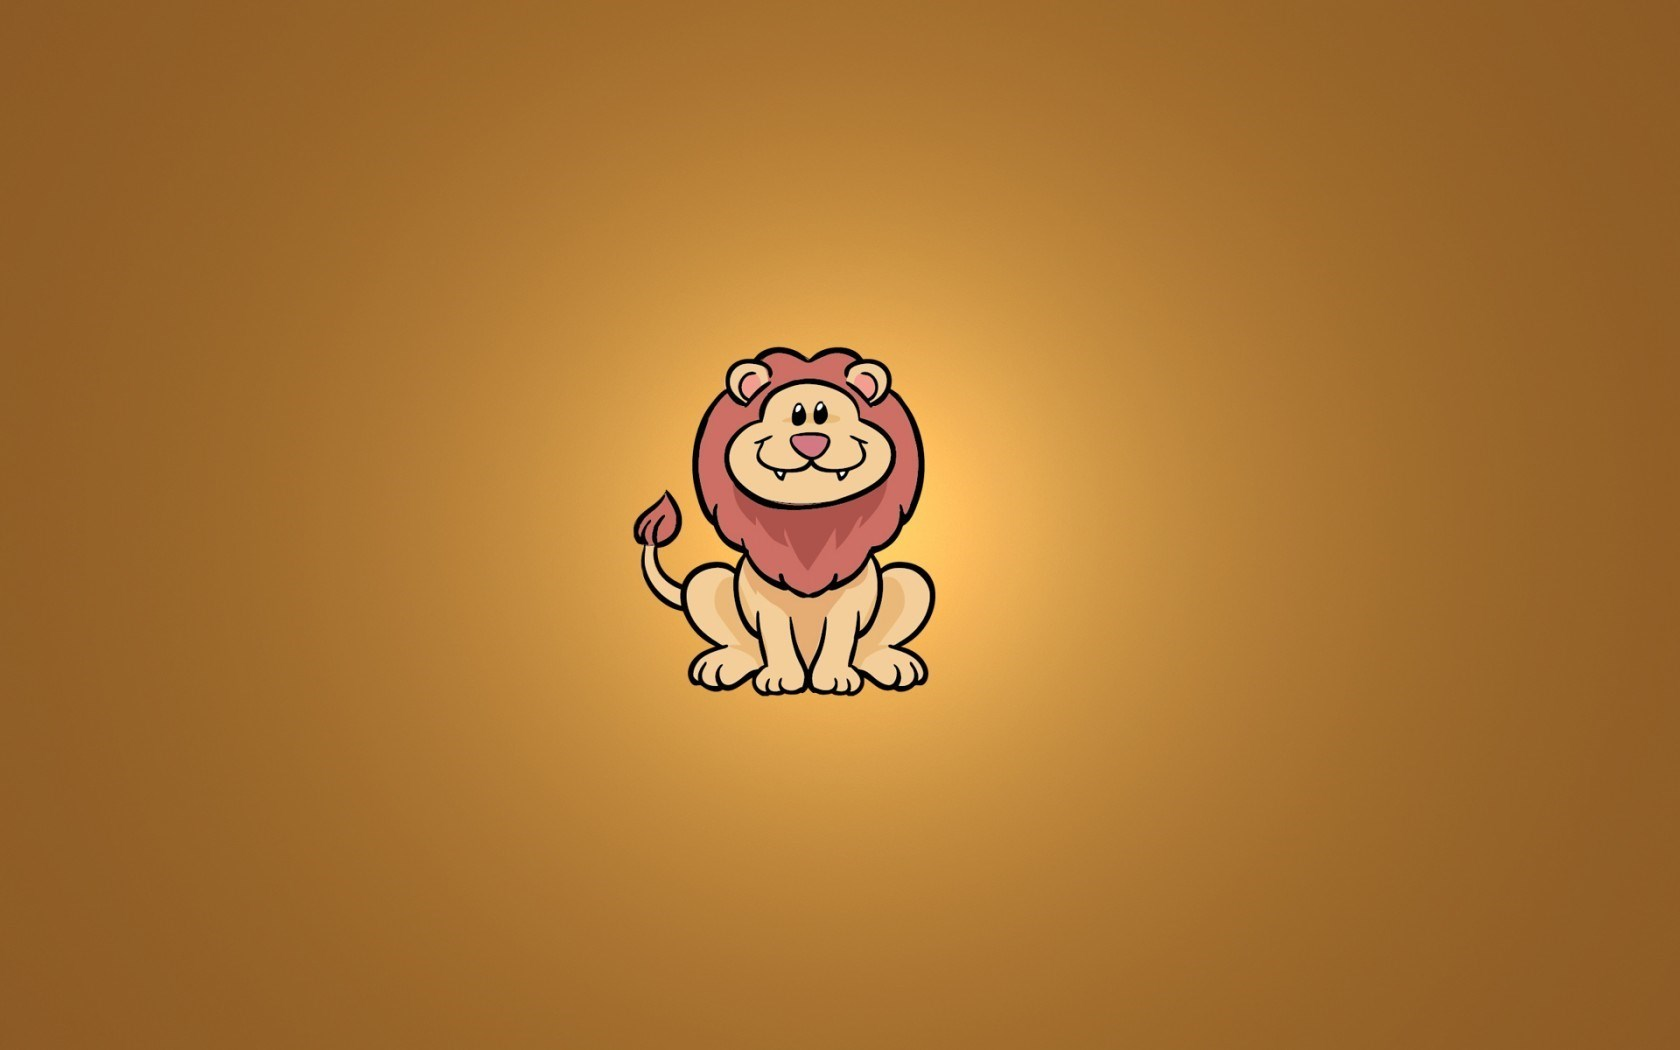 Lion Sitting Smile Minimalism Cartoon